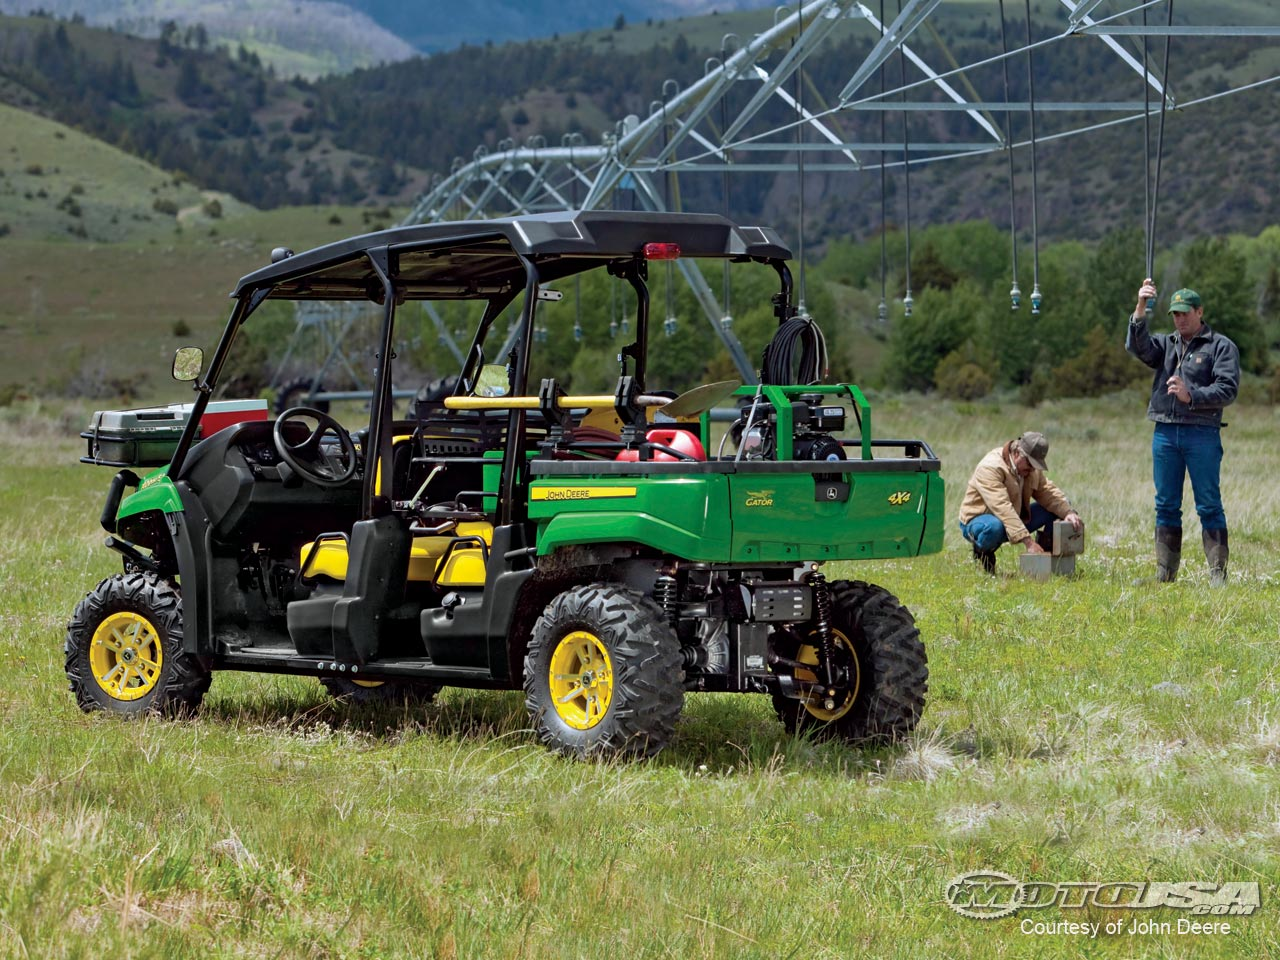 John deere gator photo - 4